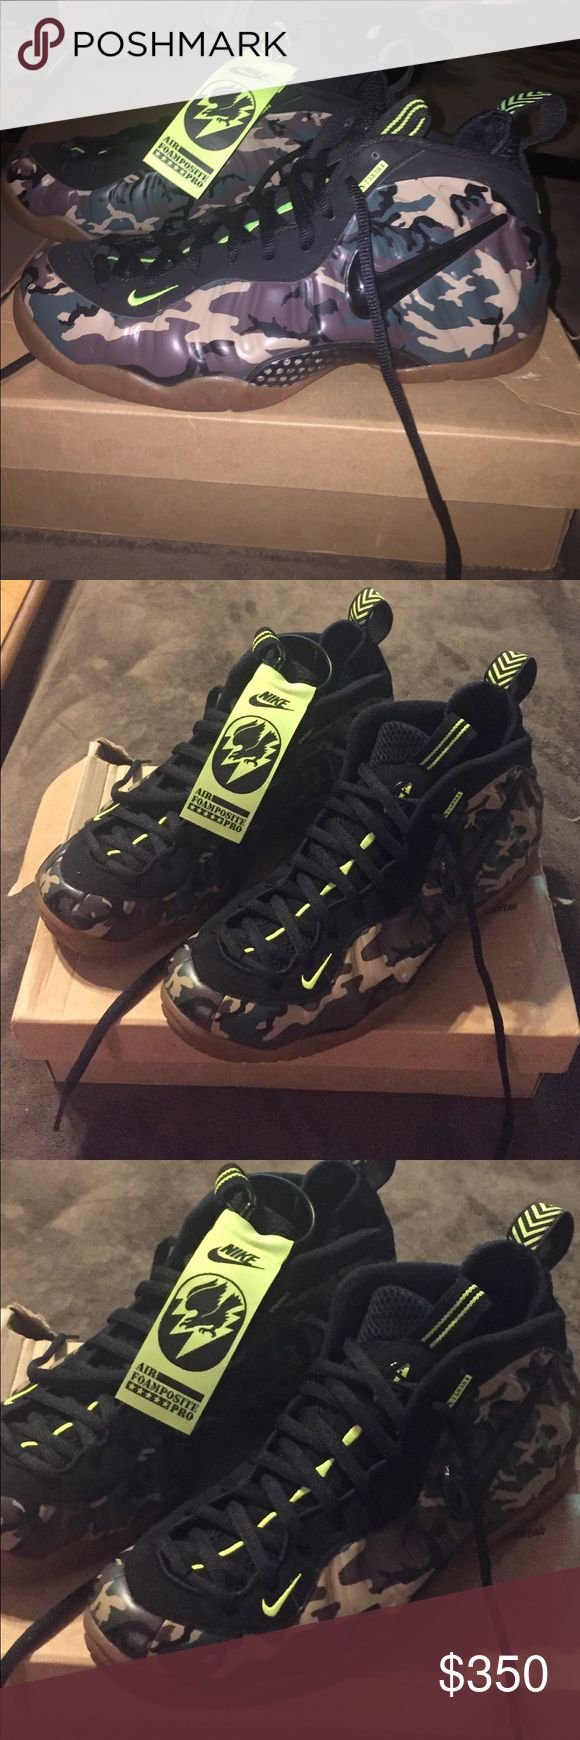 NIKE AIR FOAMPOSITE PRO sneakers Men's size 9.5 NIKE AIR FOAMPOSITE PRO sneakers. Camo with black swoosh. Black laces. RARE never worn.  NIKE Shoes Sneakers